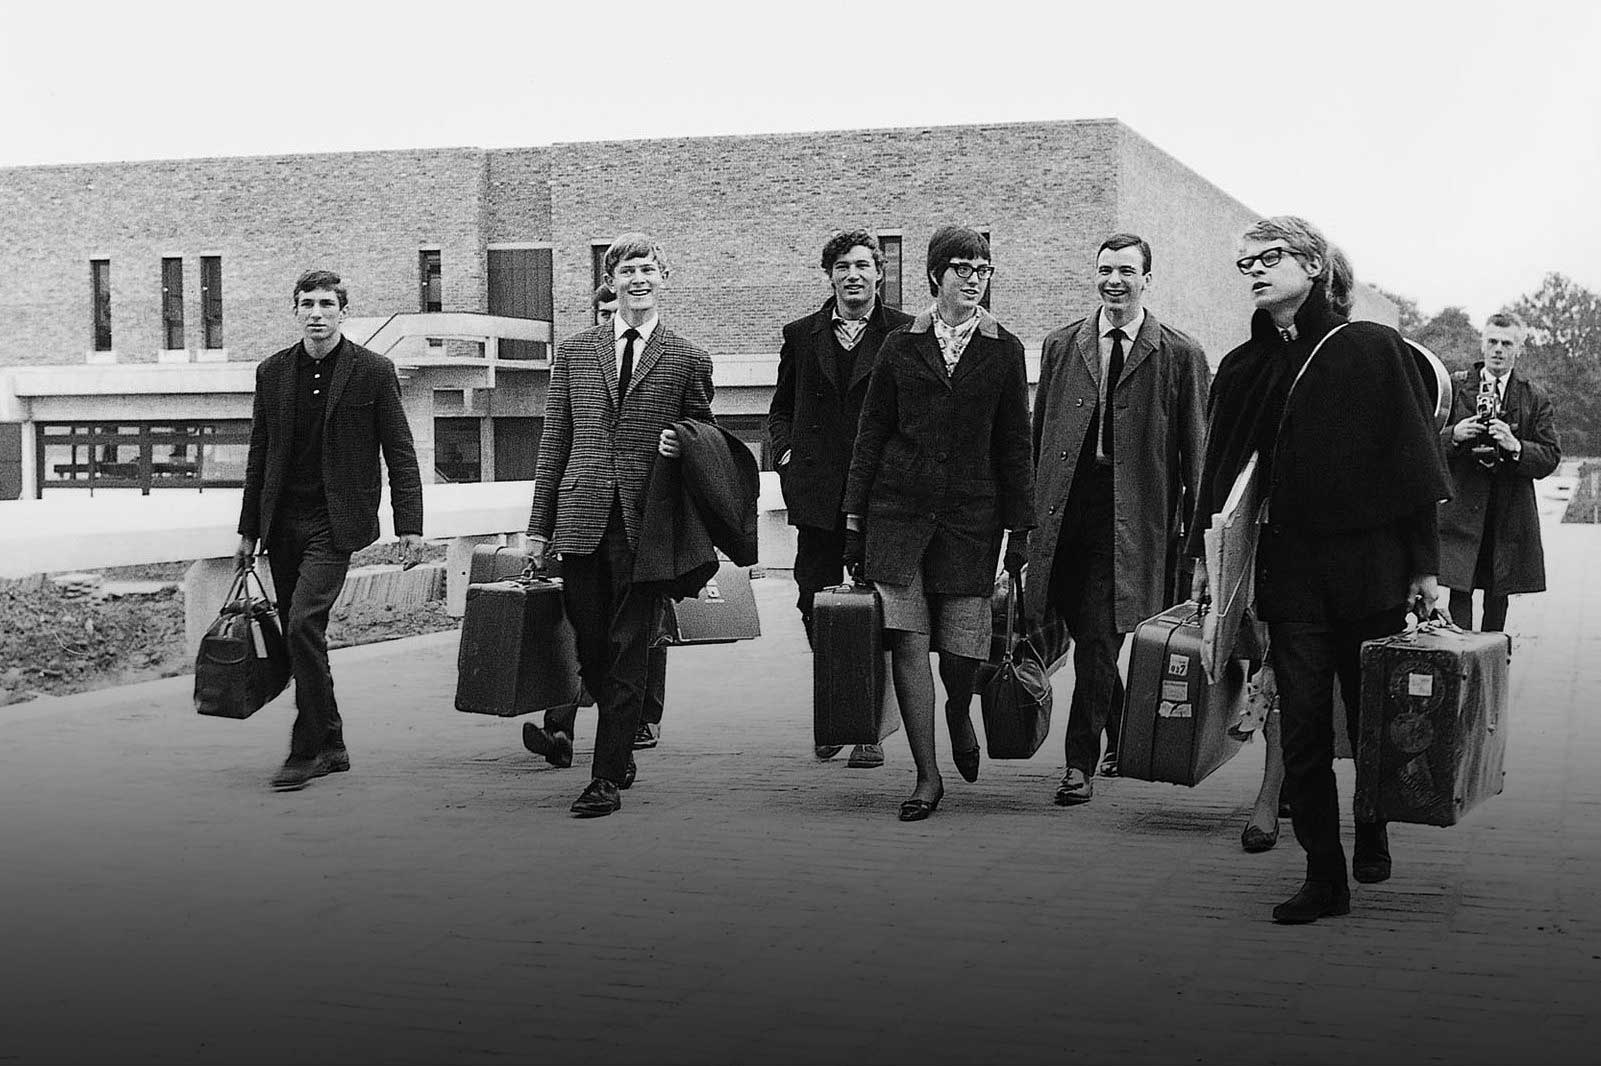 First students arriving on campus in 1965